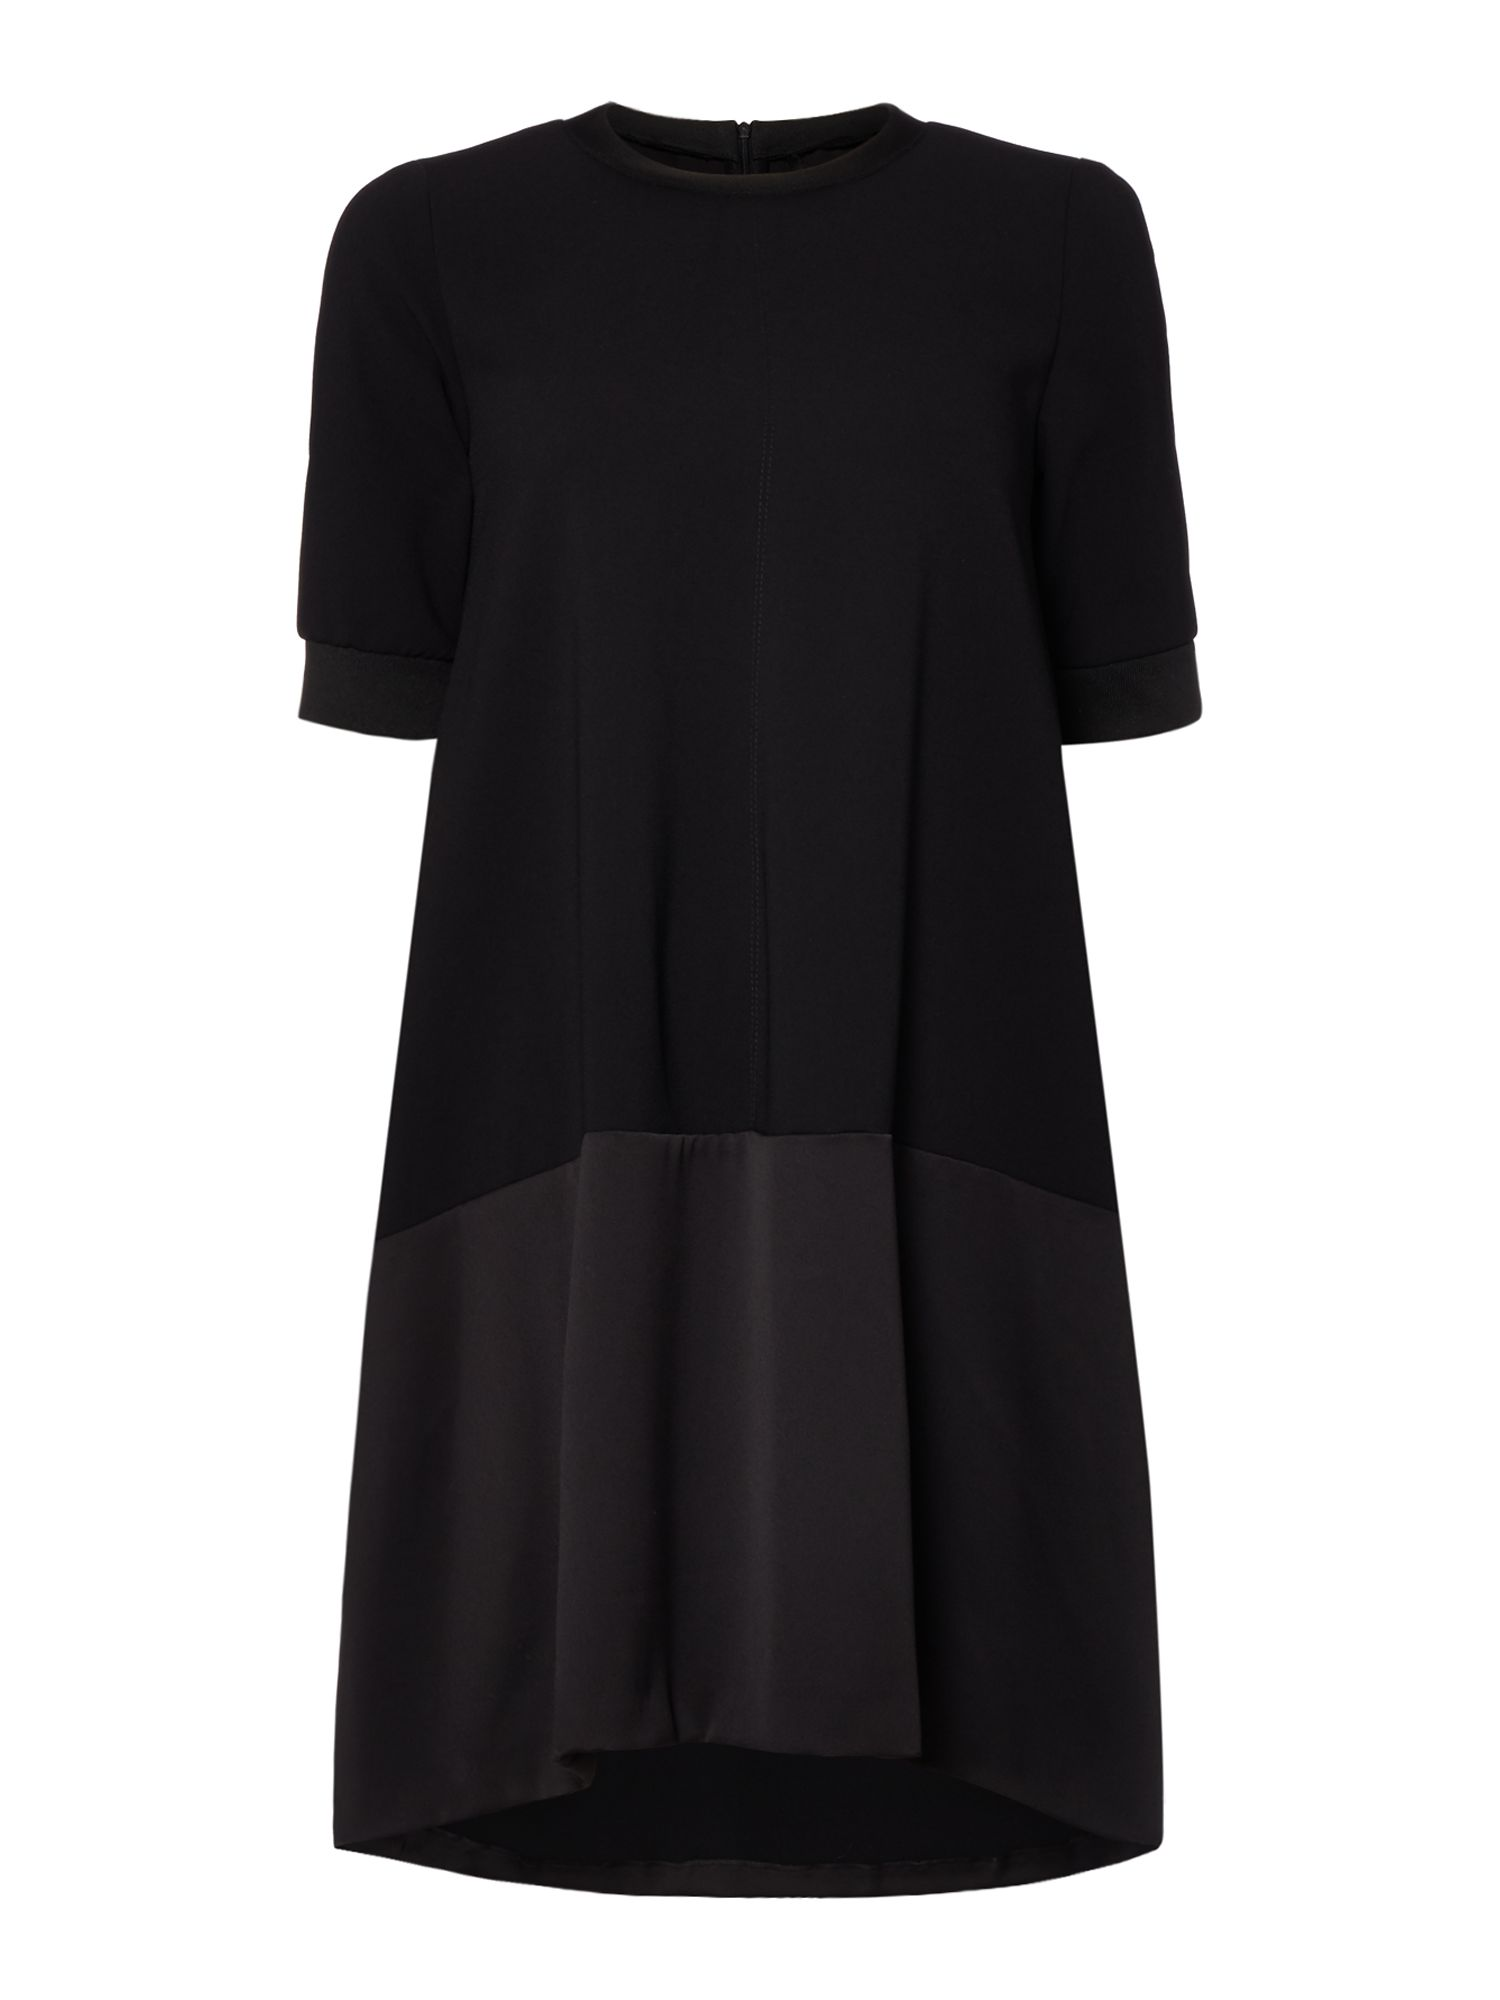 Marella Fresia 1/2 sleeve woven mix dress, Black